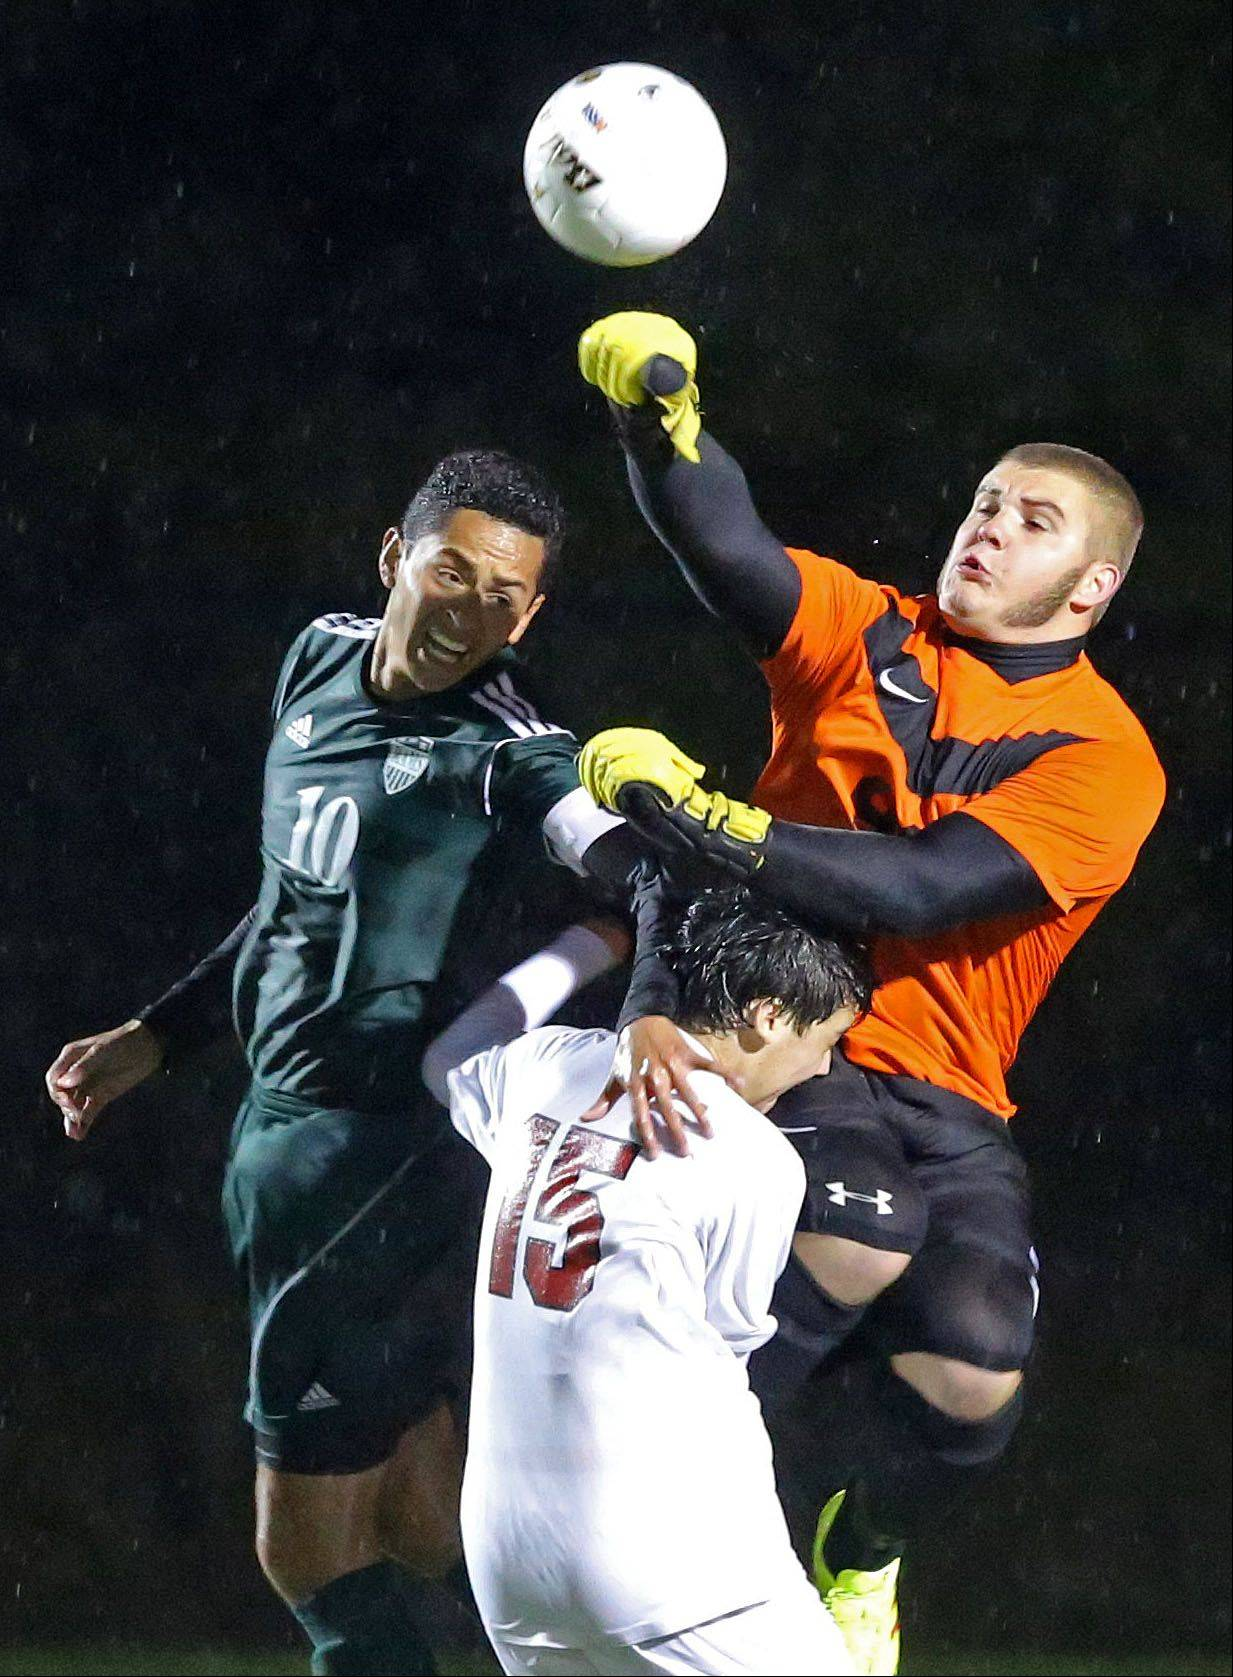 Grayslake Central's Johnny Madrid, left, and Antioch's Jordan Keller (15) and Tommy Tritschler go up for a ball during their Class 3A sectional semifinal Wednesday at Grayslake North High School.